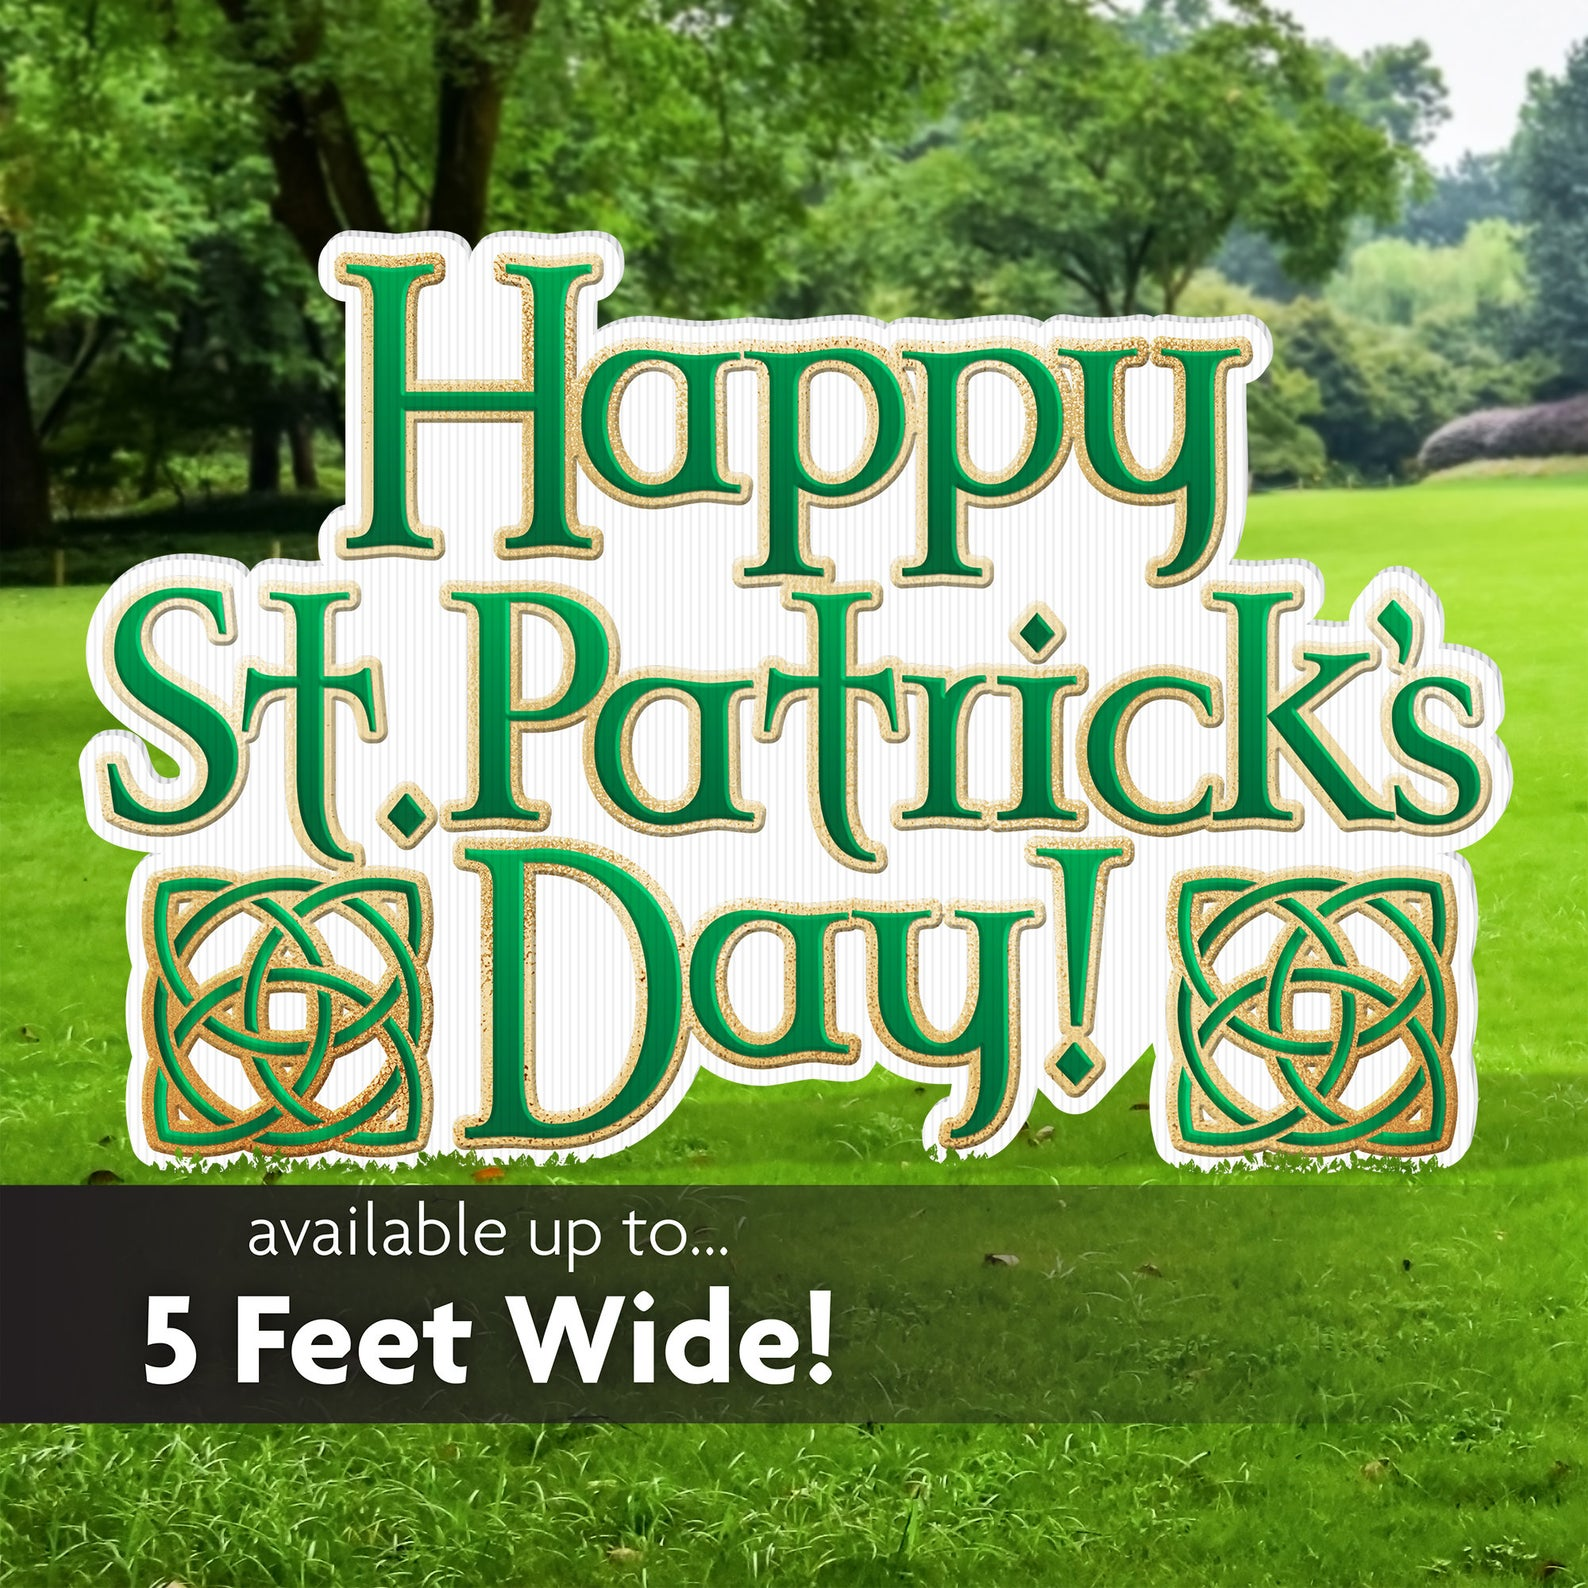 Happy St. Patrick's Day Yard Sign